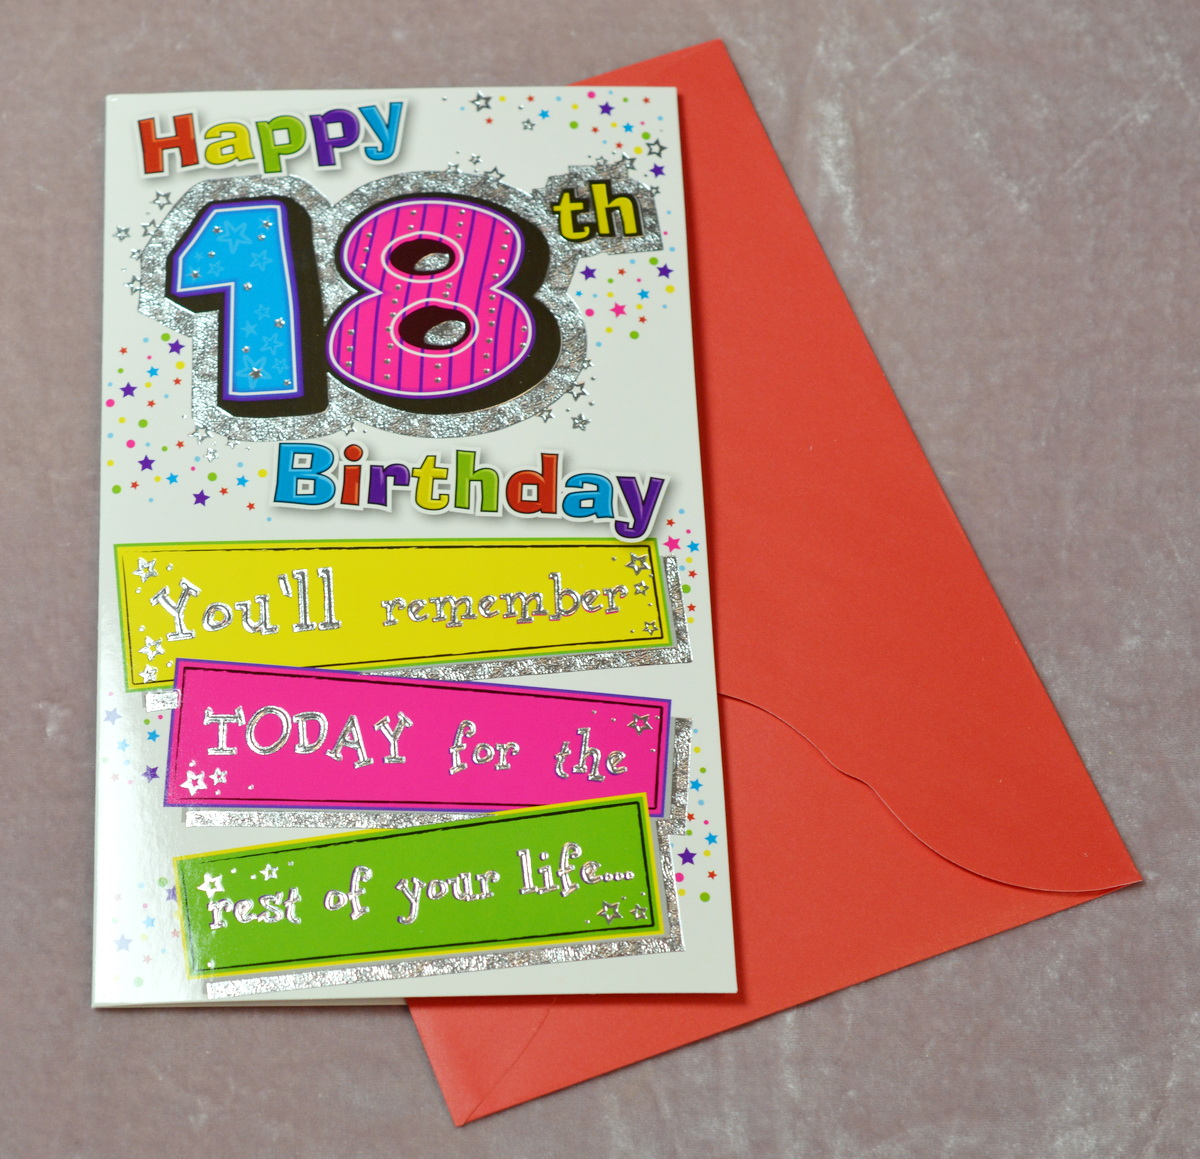 Handmade greeting cards blog birthday cards for men handmade greeting cards blog bookmarktalkfo Gallery